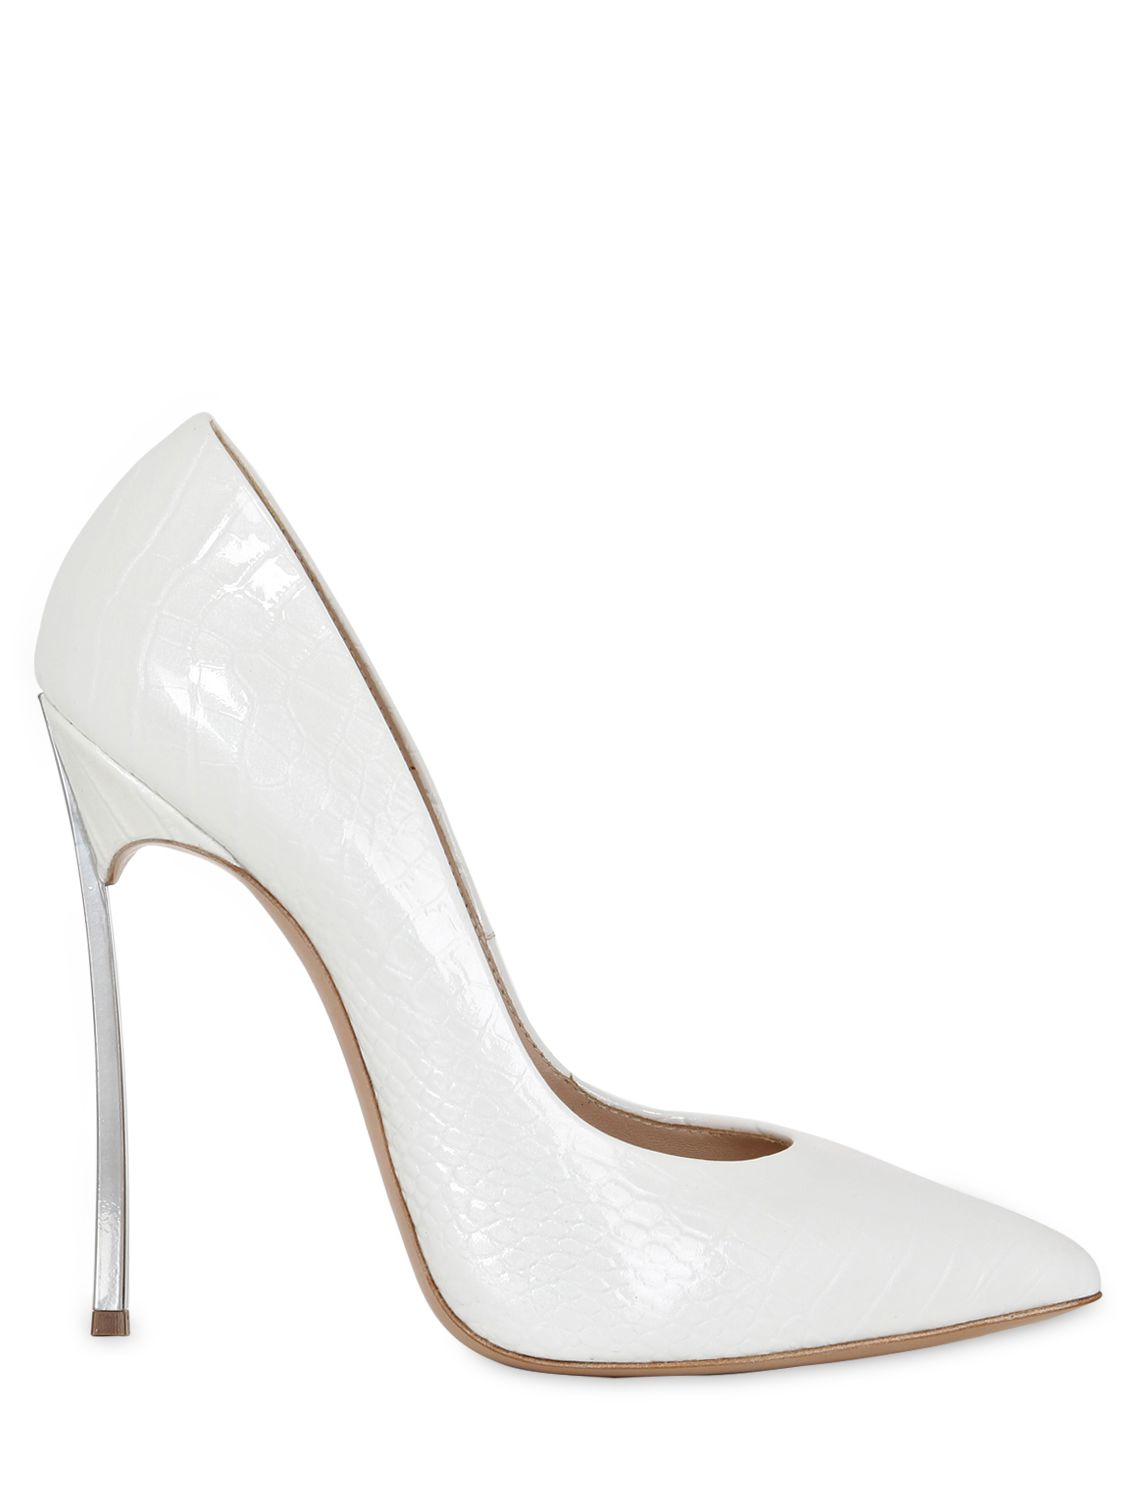 fdfc92dbfd Casadei 120mm Blade Croc Printed Leather Pumps in White - Lyst